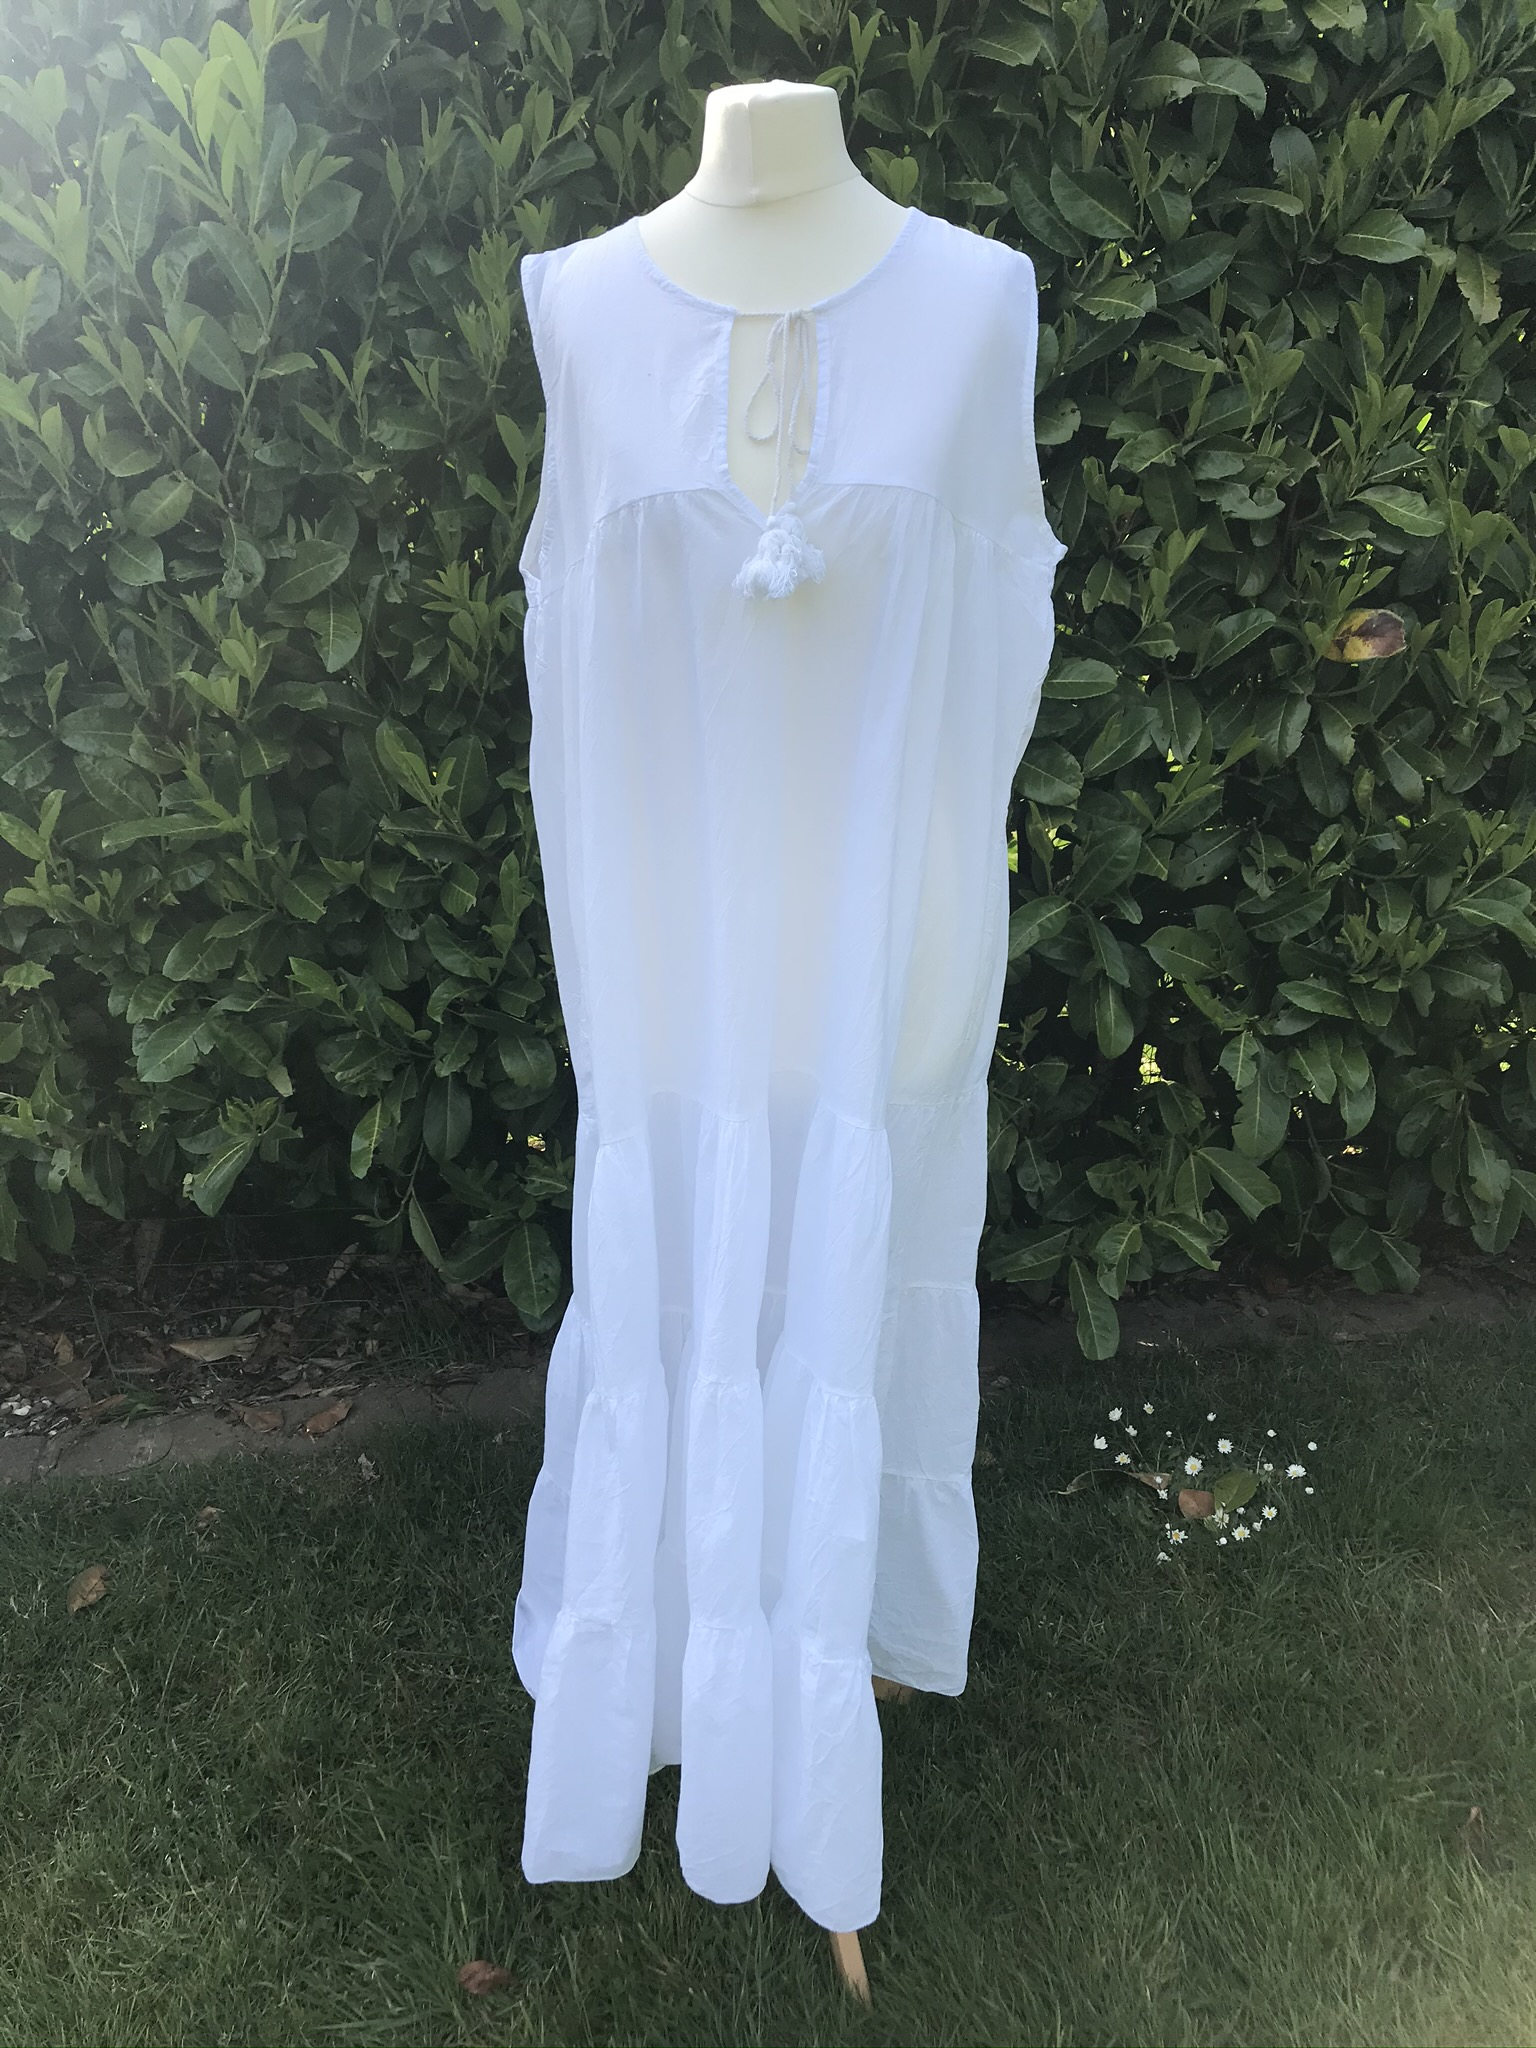 MSH white cotton tiered dress